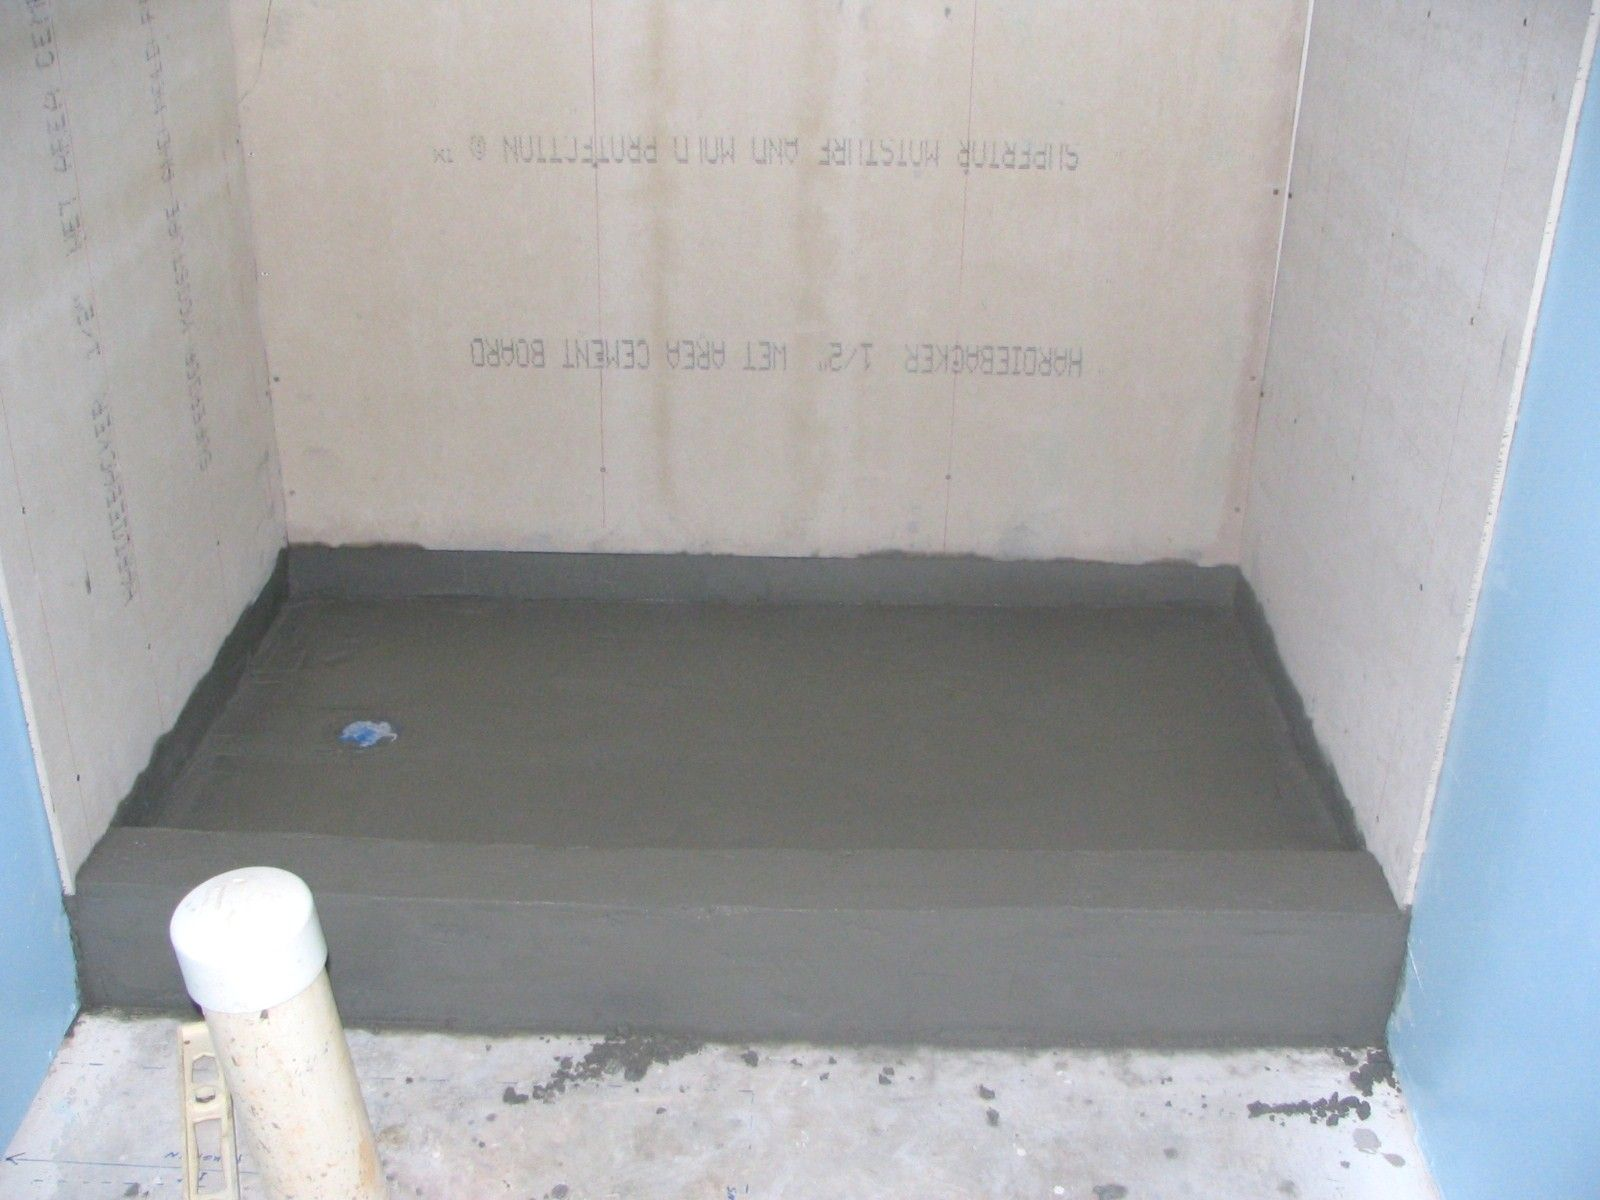 Basement Bathroom: Shower Pan Mortar Bed And Cement Backer Board On Walls